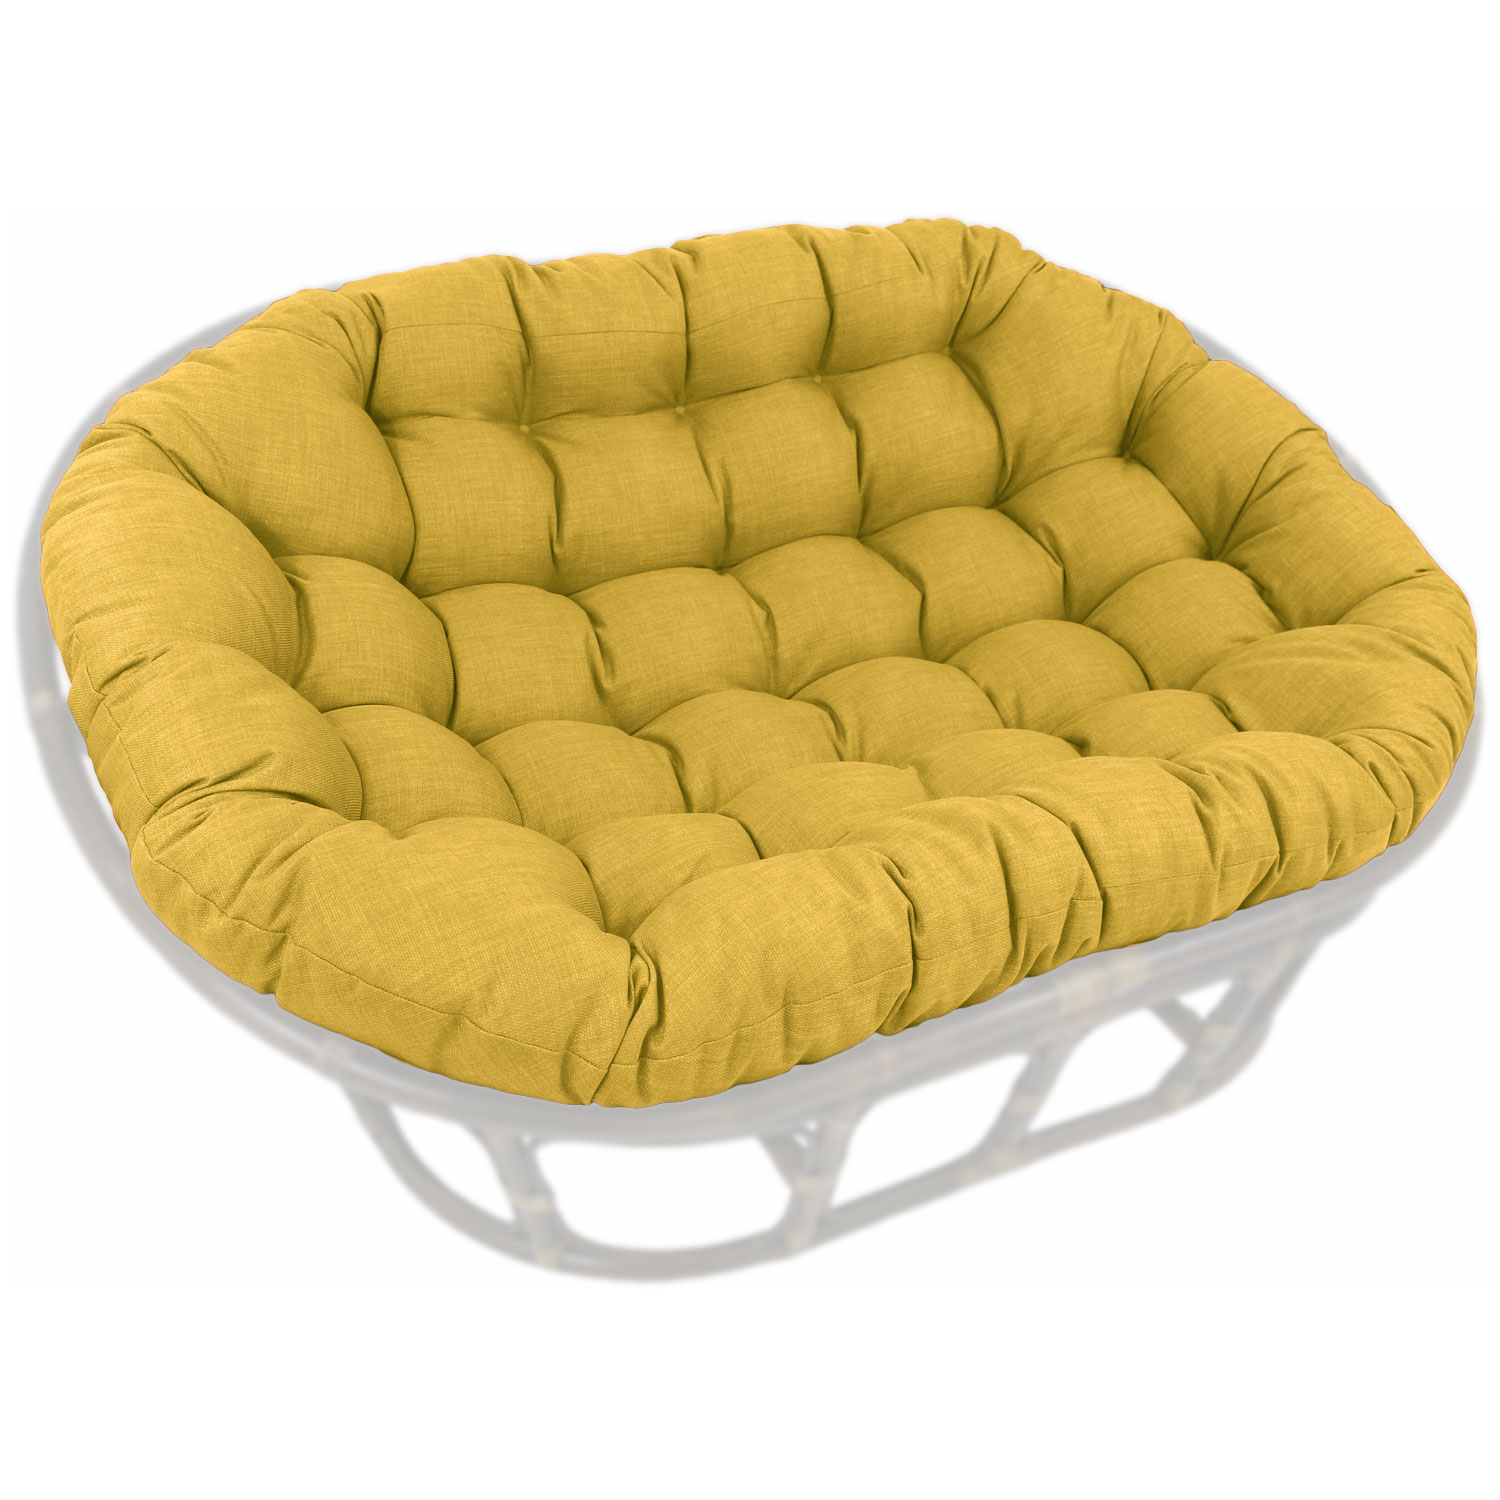 60'' x 48'' Outdoor Fabric Tufted Double Papasan Cushion